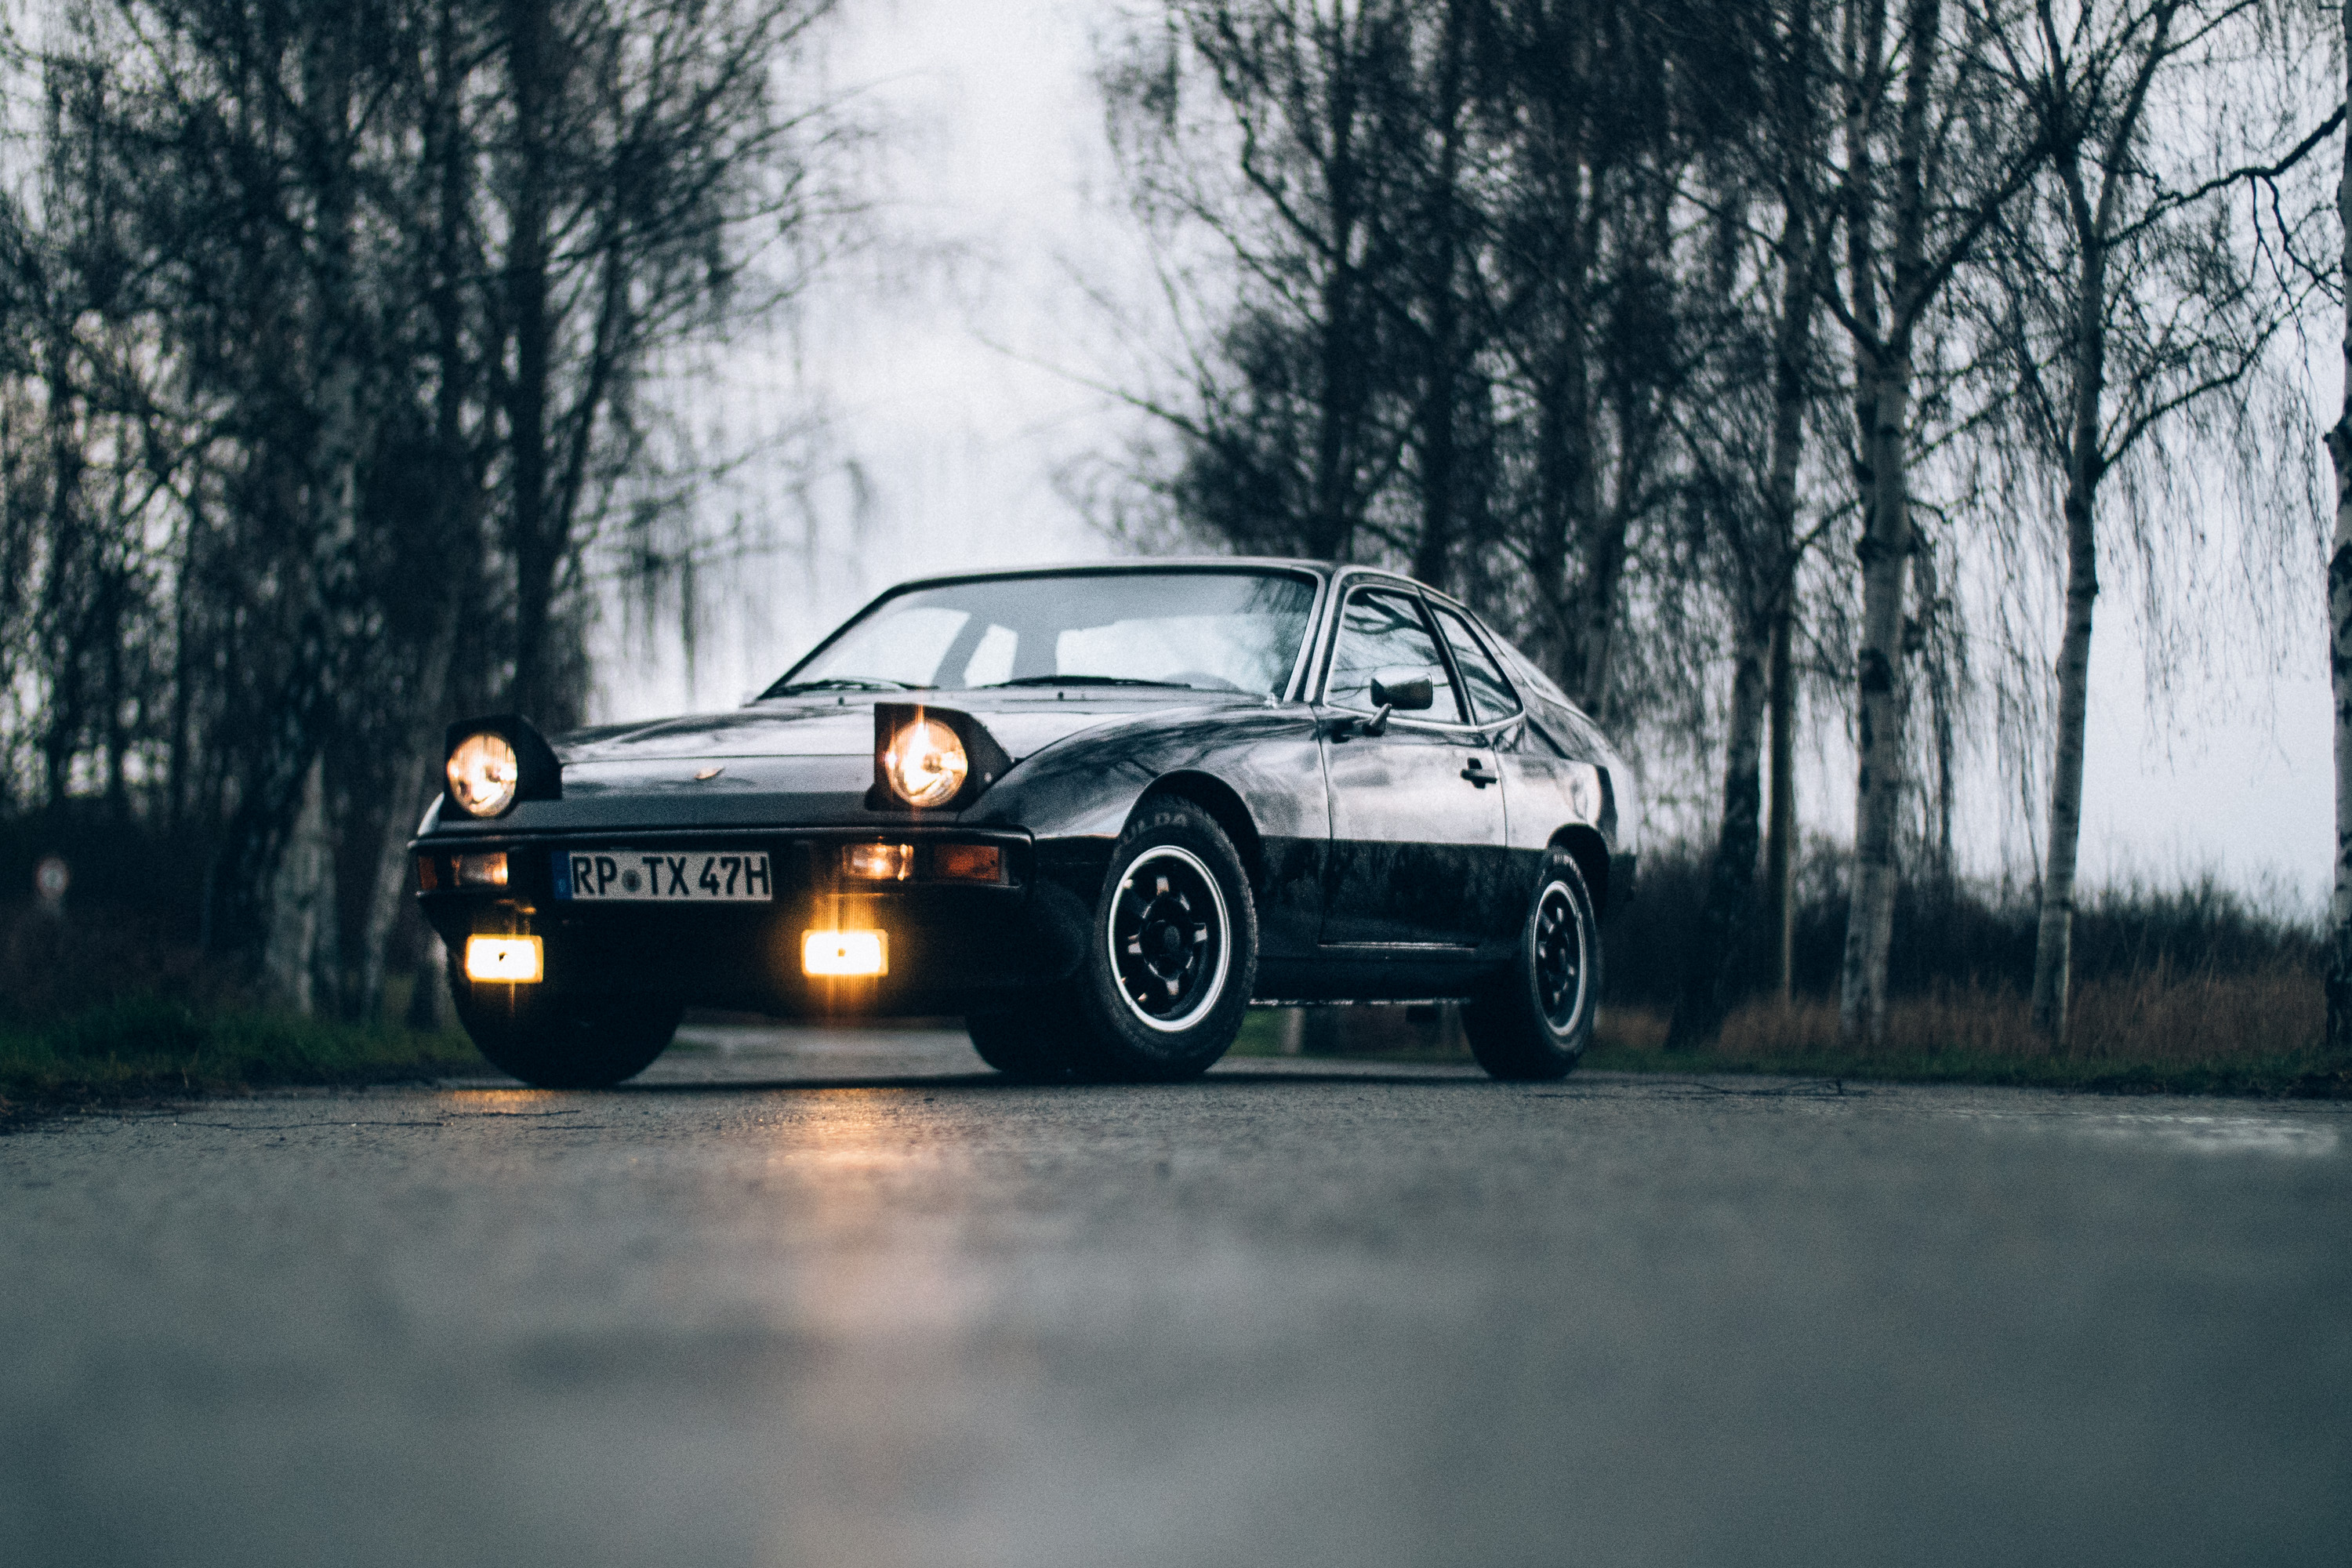 These Are The Best Classic Cars For Students Petrolicious Old Buick Parts Suppliers 20n A Is Great Buy Only Turbos Or S Models More Pricy Because Of All Genuine Certainly Not Everyone But Indeed An Option